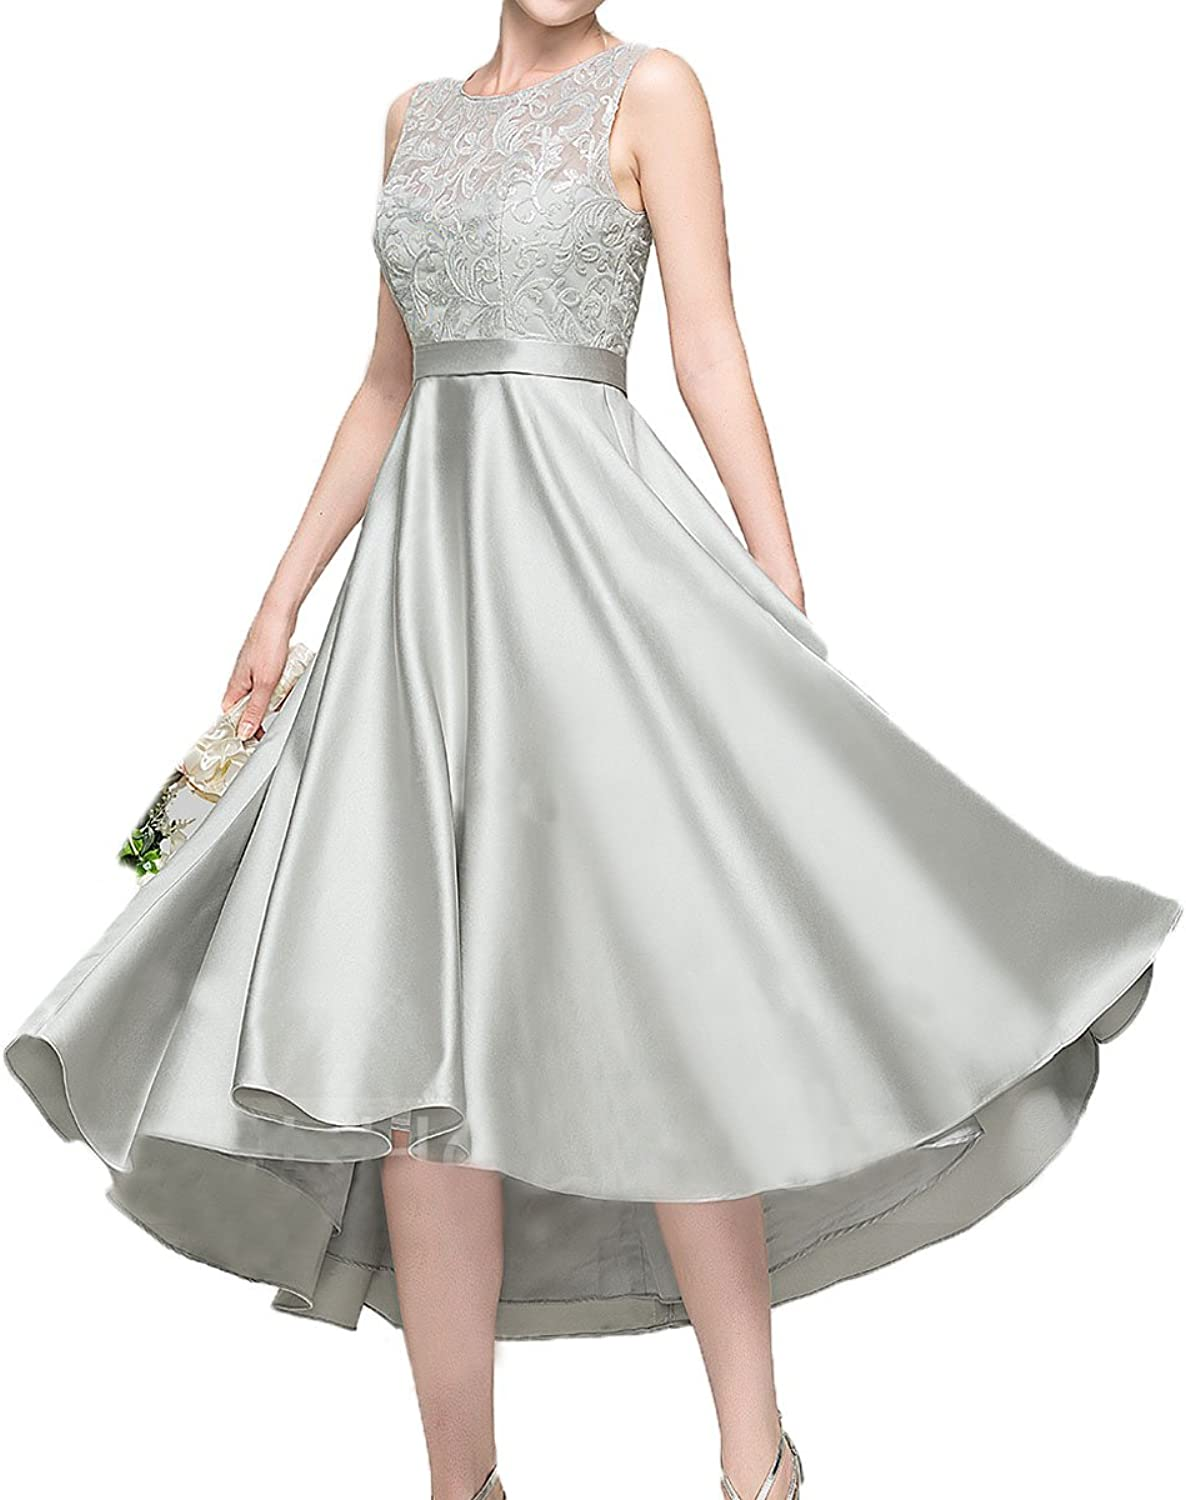 Honey Qiao Crew Satin HiLo Bridesmaid Dresses Lace Tea Length Prom Party Gowns